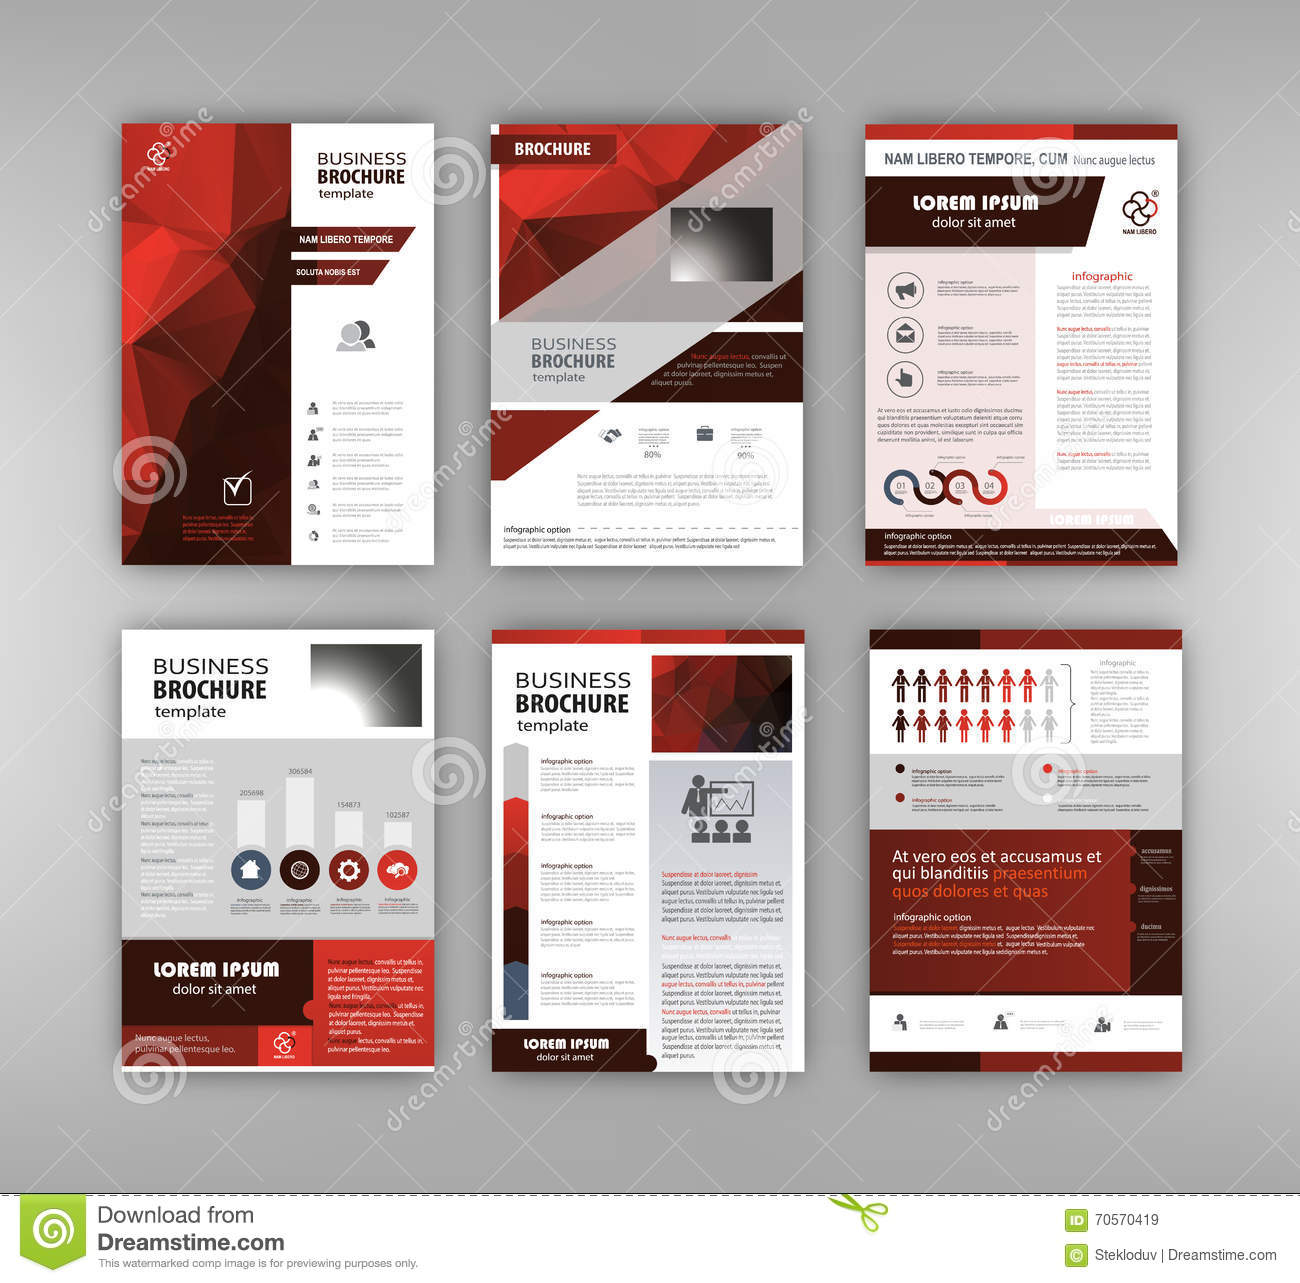 Business Brochure Design Vector Image 70570419 – Business Brochure Design